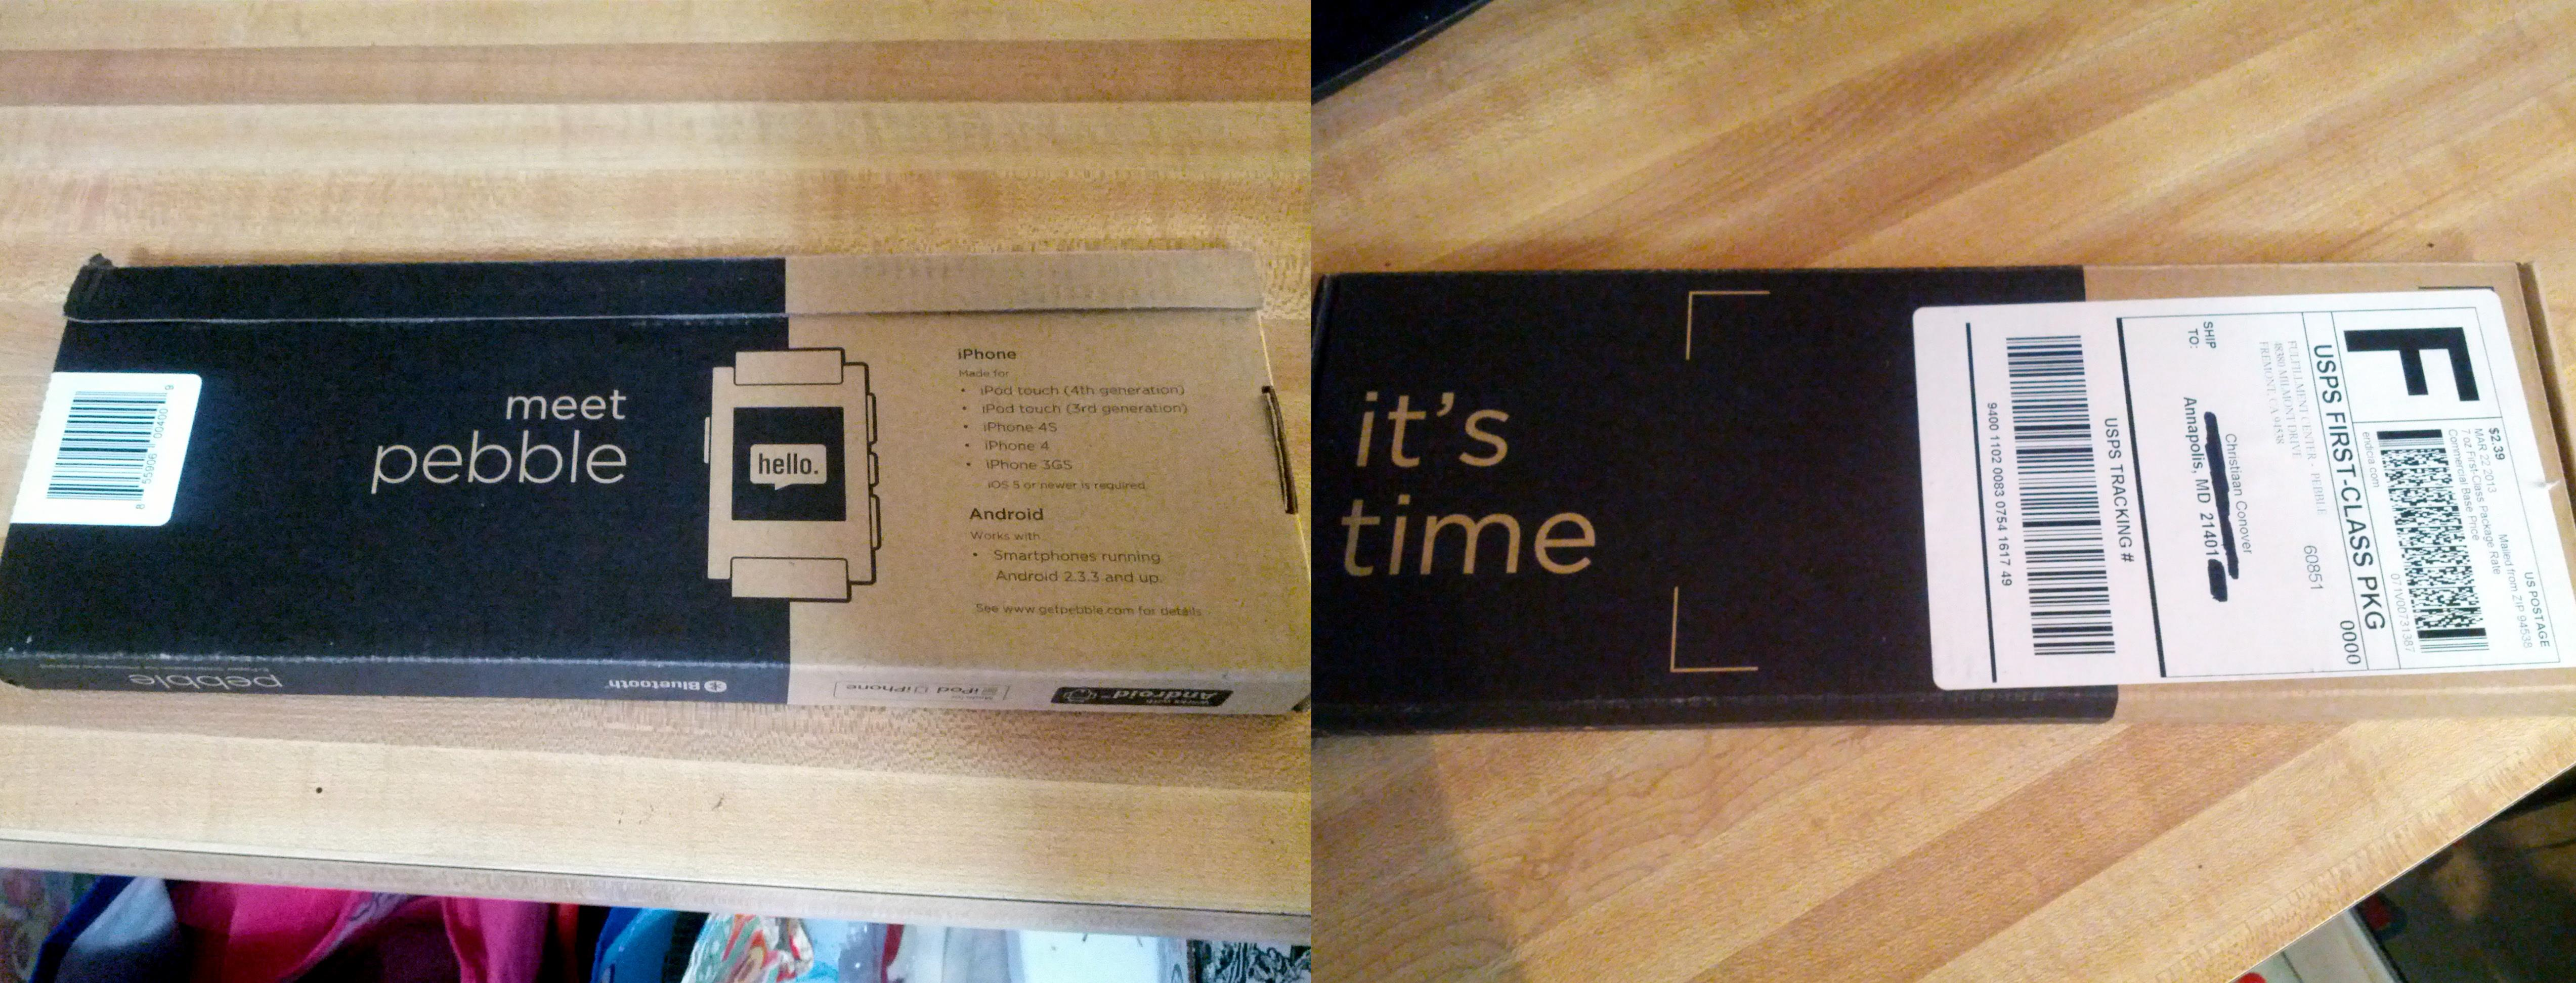 Pebble's box, front and back